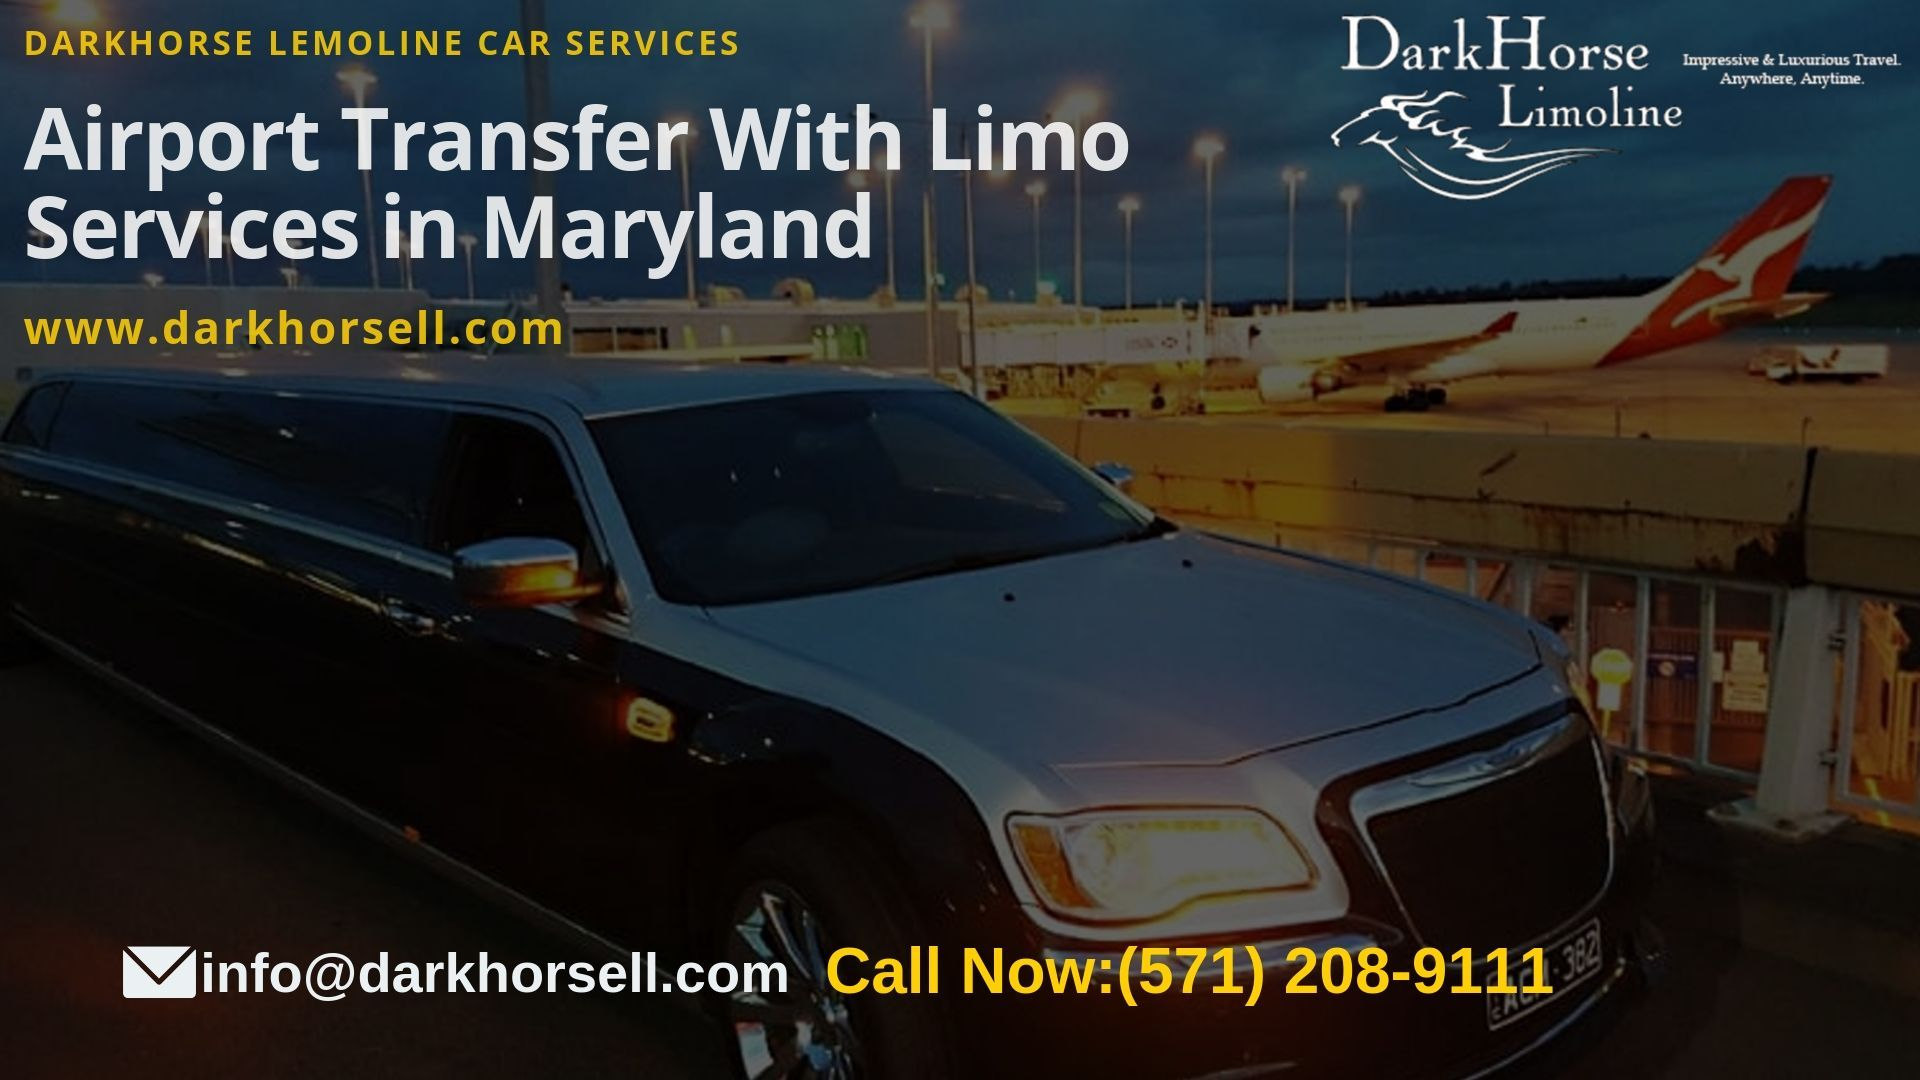 Limo Service In Maryland With Images Airport Limo Service